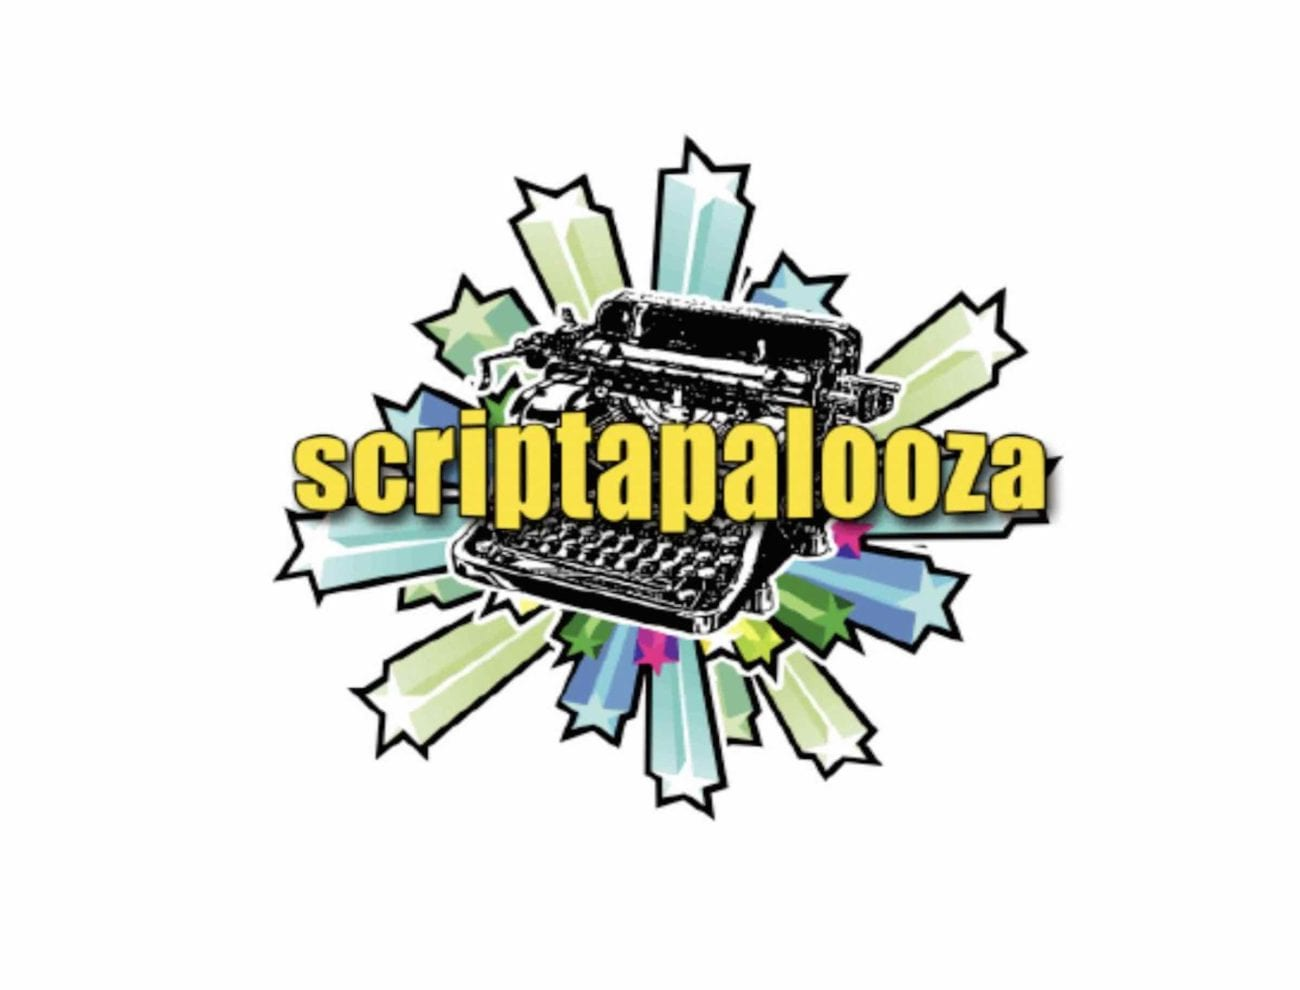 Scriptapalooza is one of the best contests for writers to get their work to the right people. Here's why you should enter.